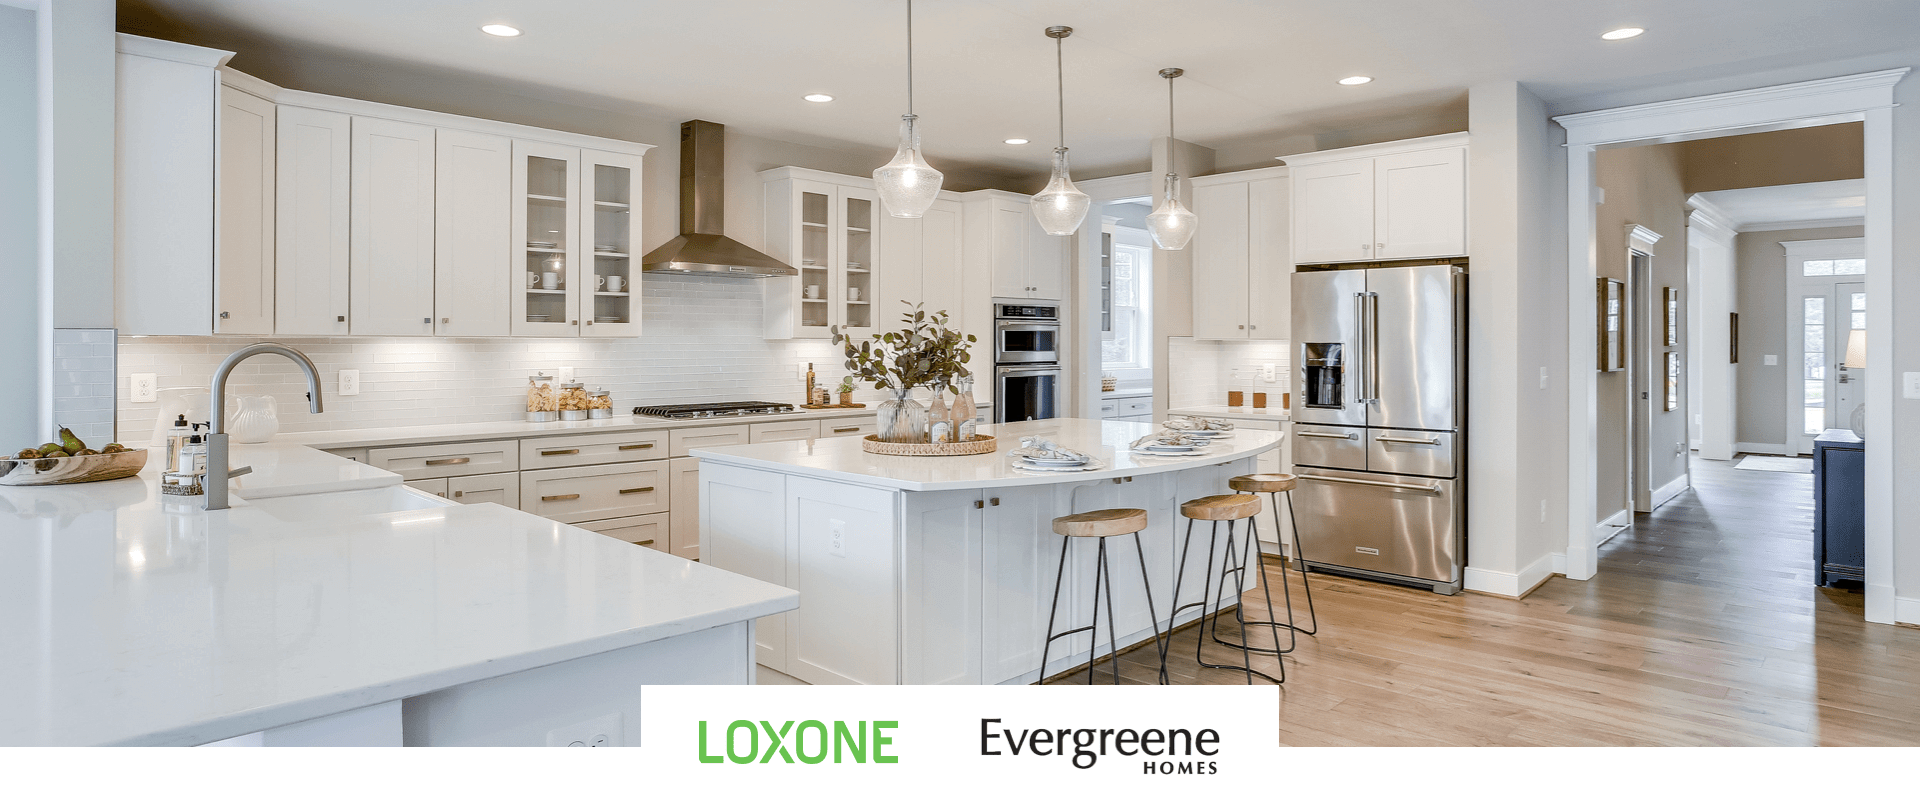 Loxone and Evergrene kitchen